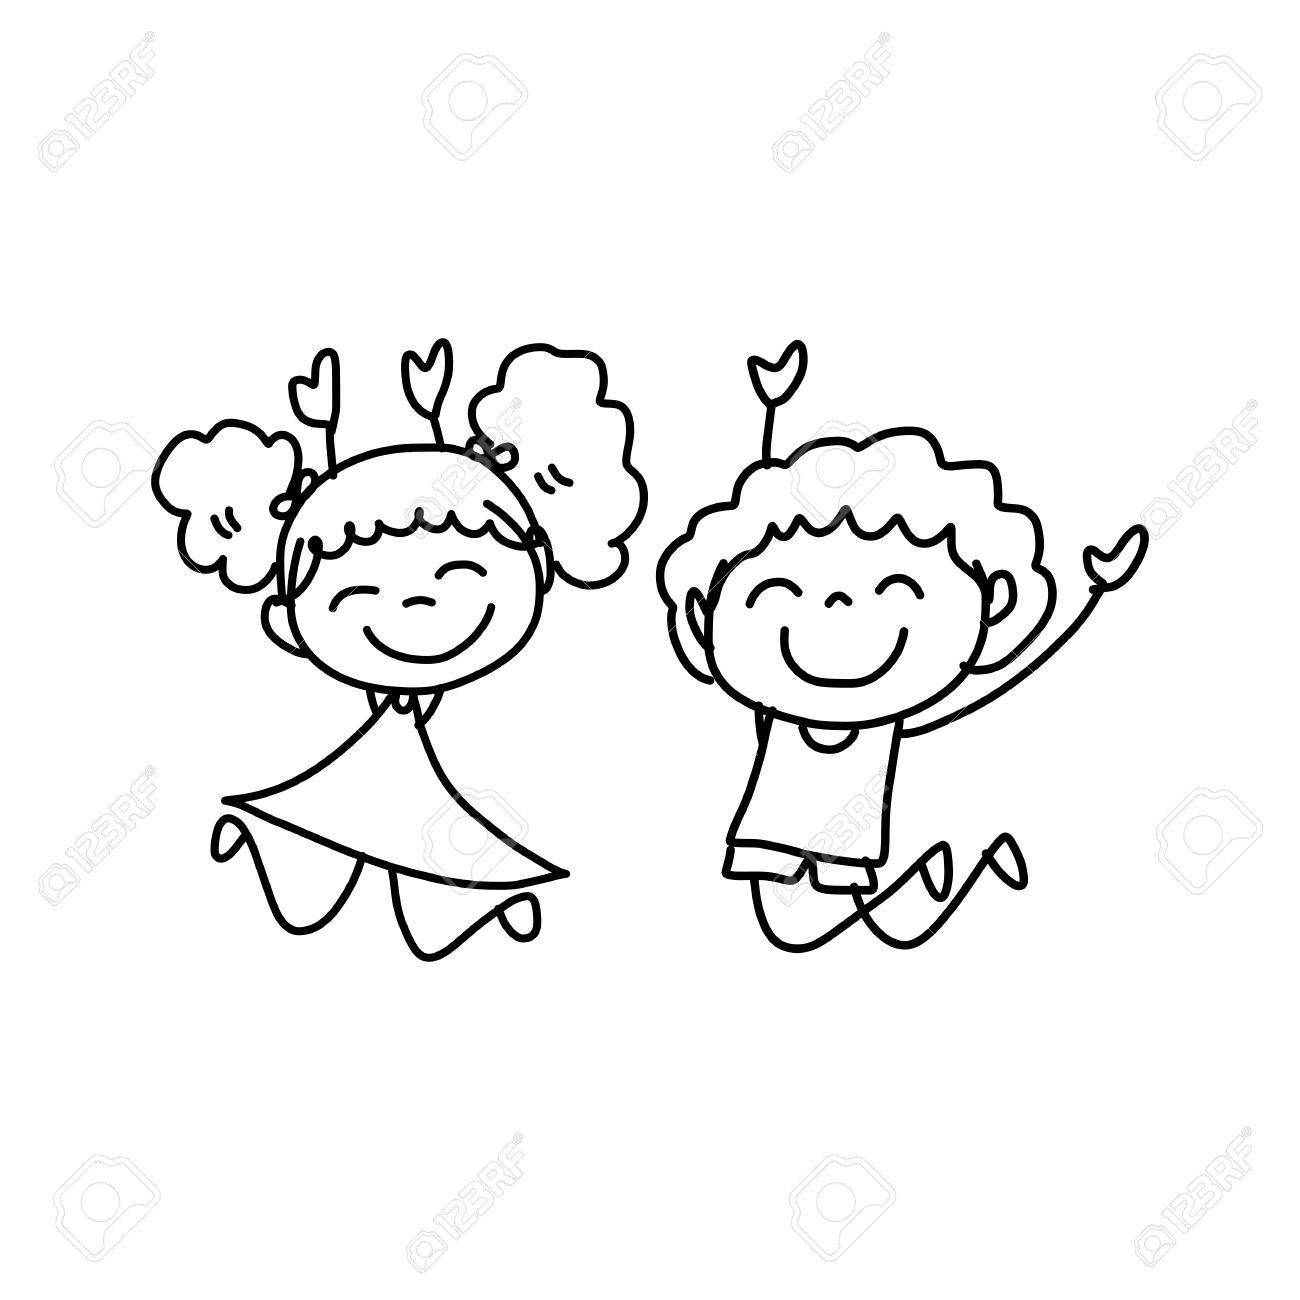 Hand Drawing Cartoon Concept Happy Kids Playing Royalty Free